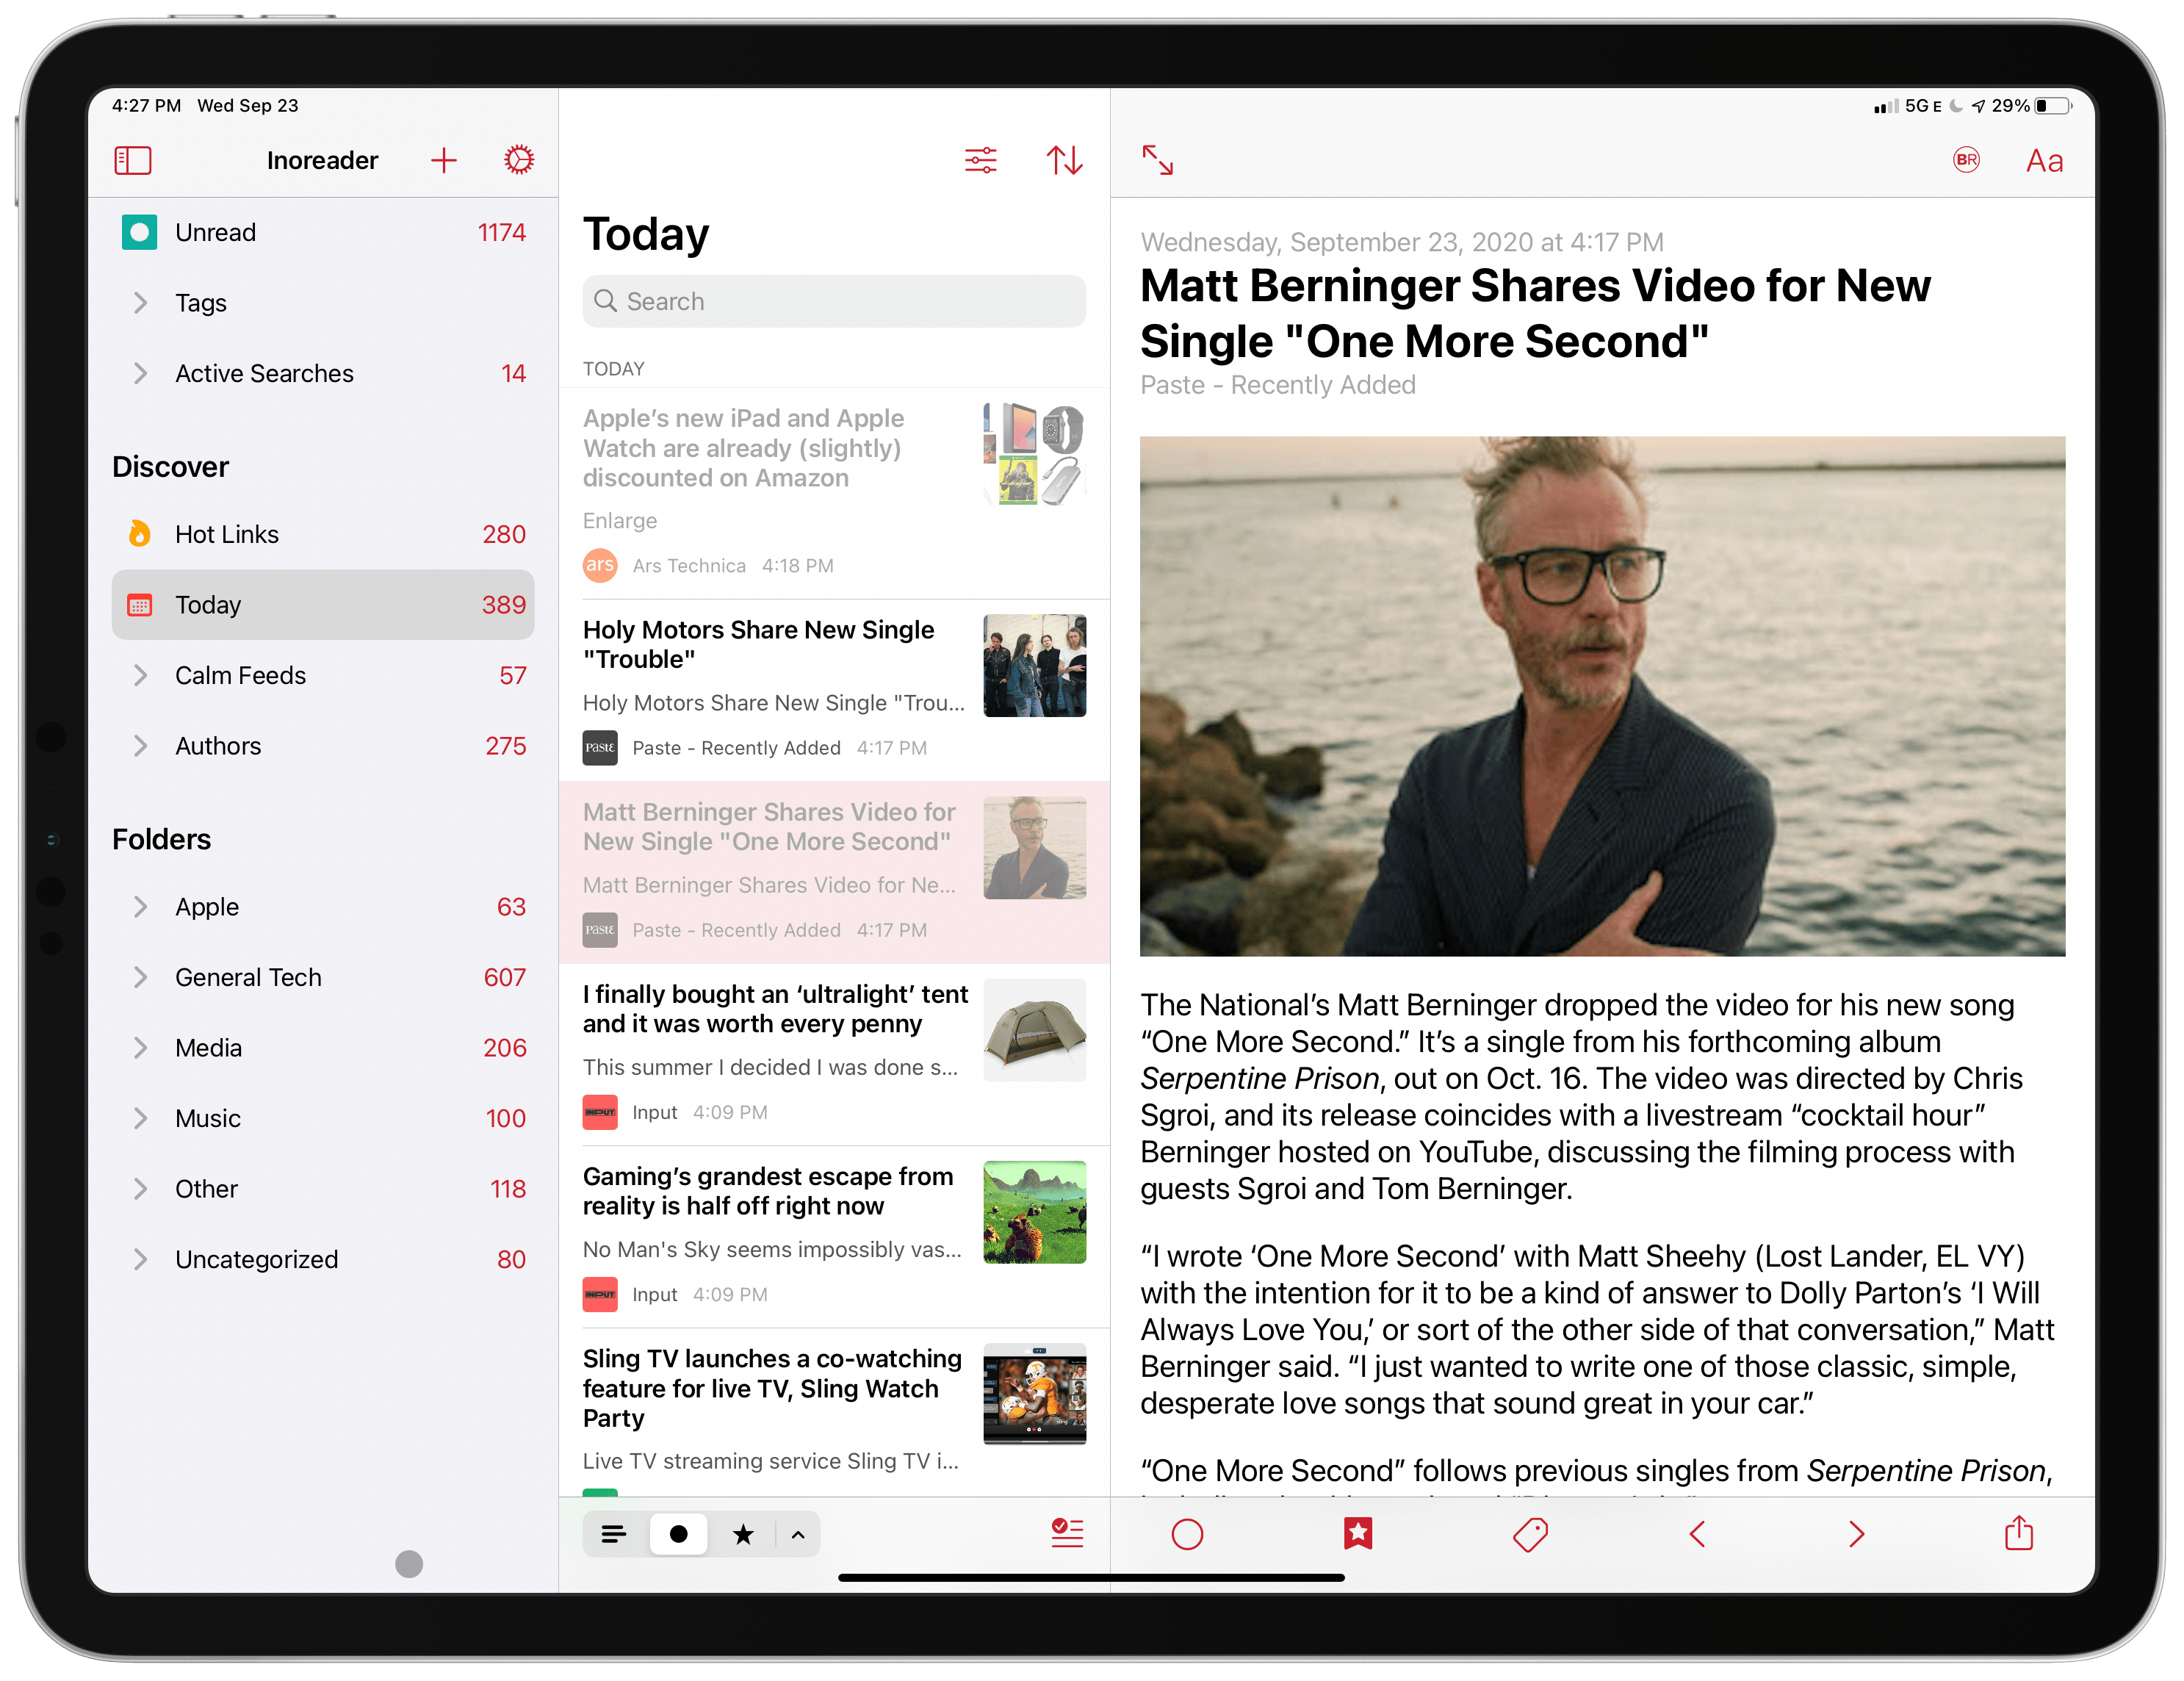 Lire Brings Its Highly-Customizable RSS Reading Style to an All-New iPad Design and Widgets